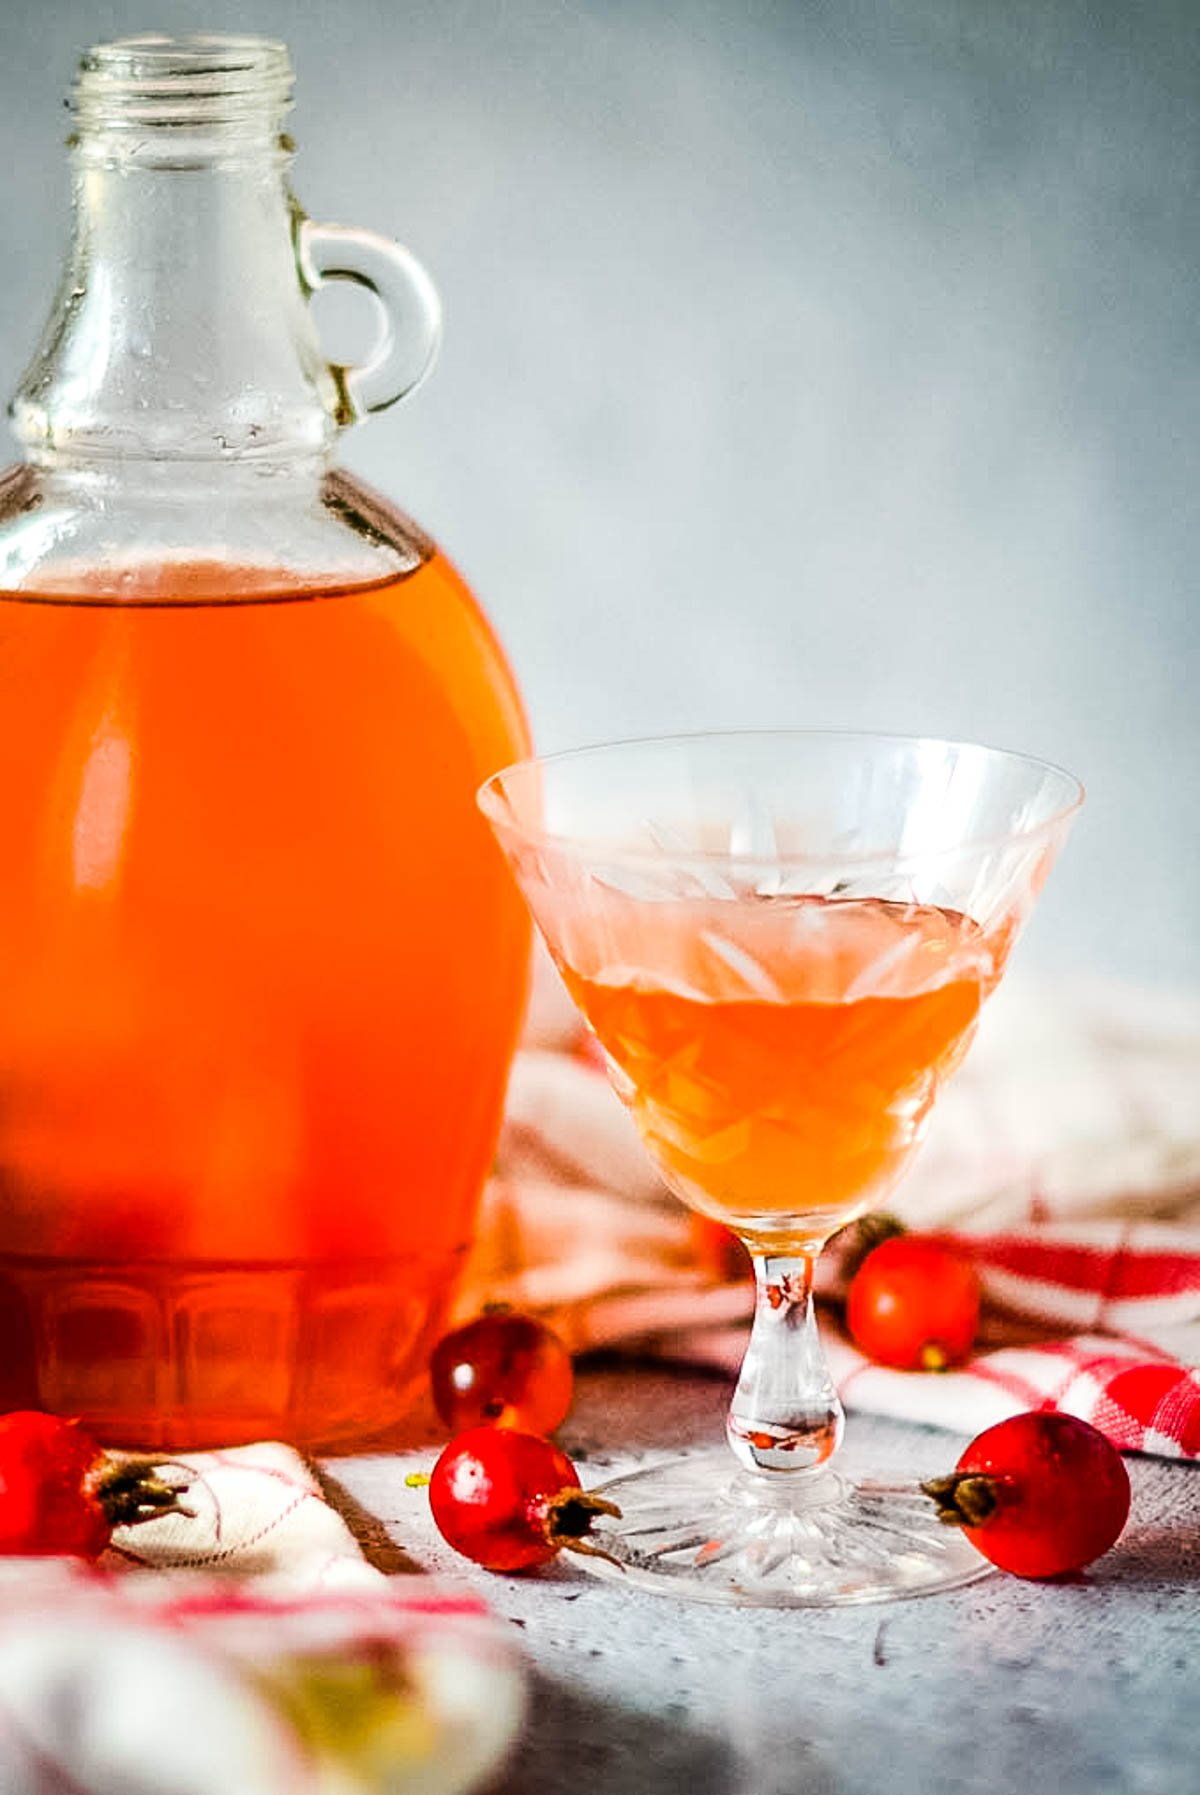 bottle of syrup with glass in front